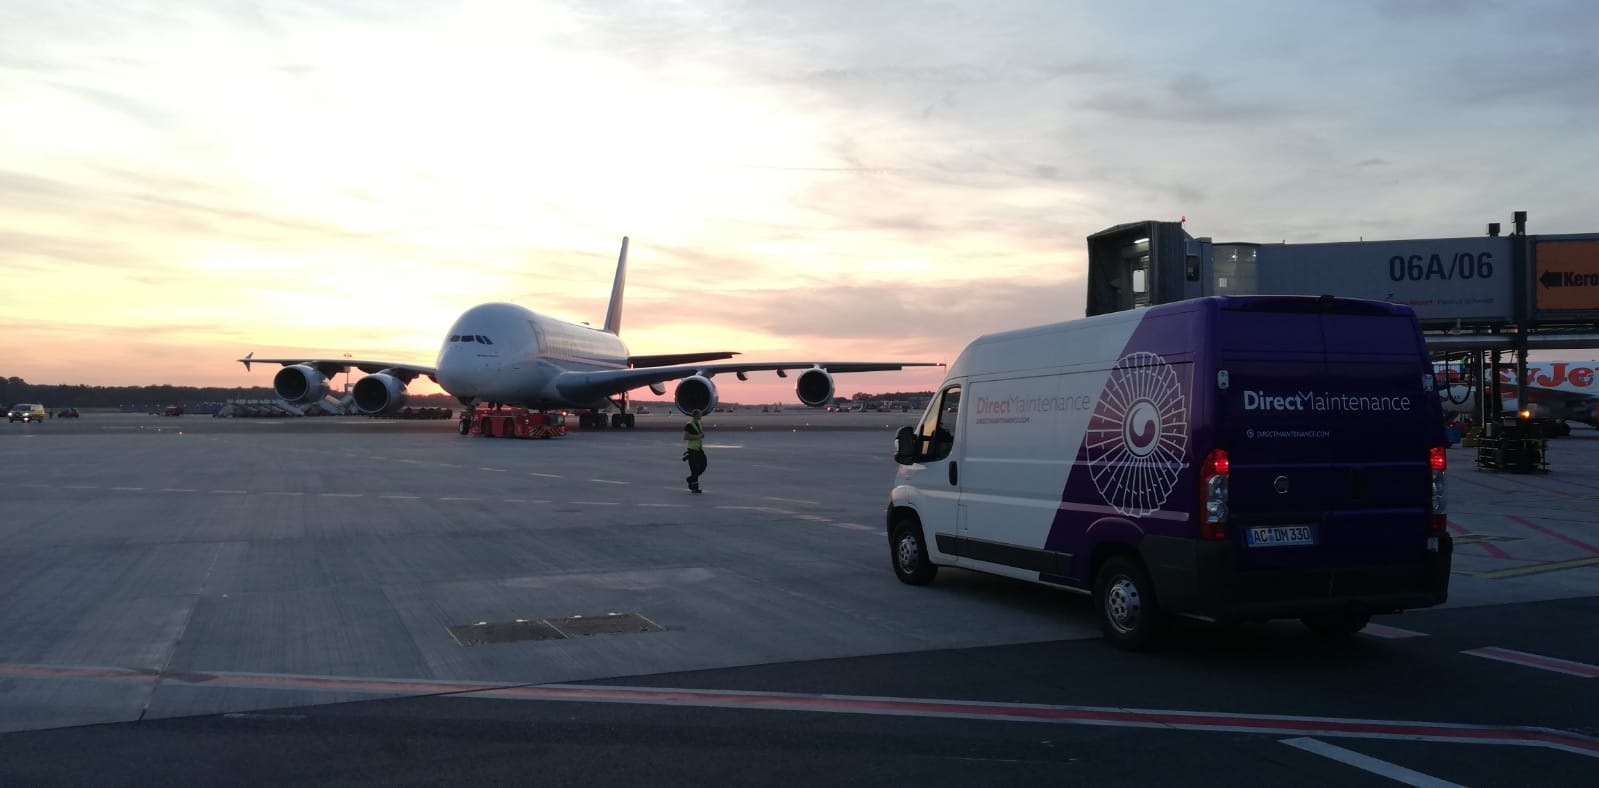 Direct Maintenance welcomes the first A380 at DUS station